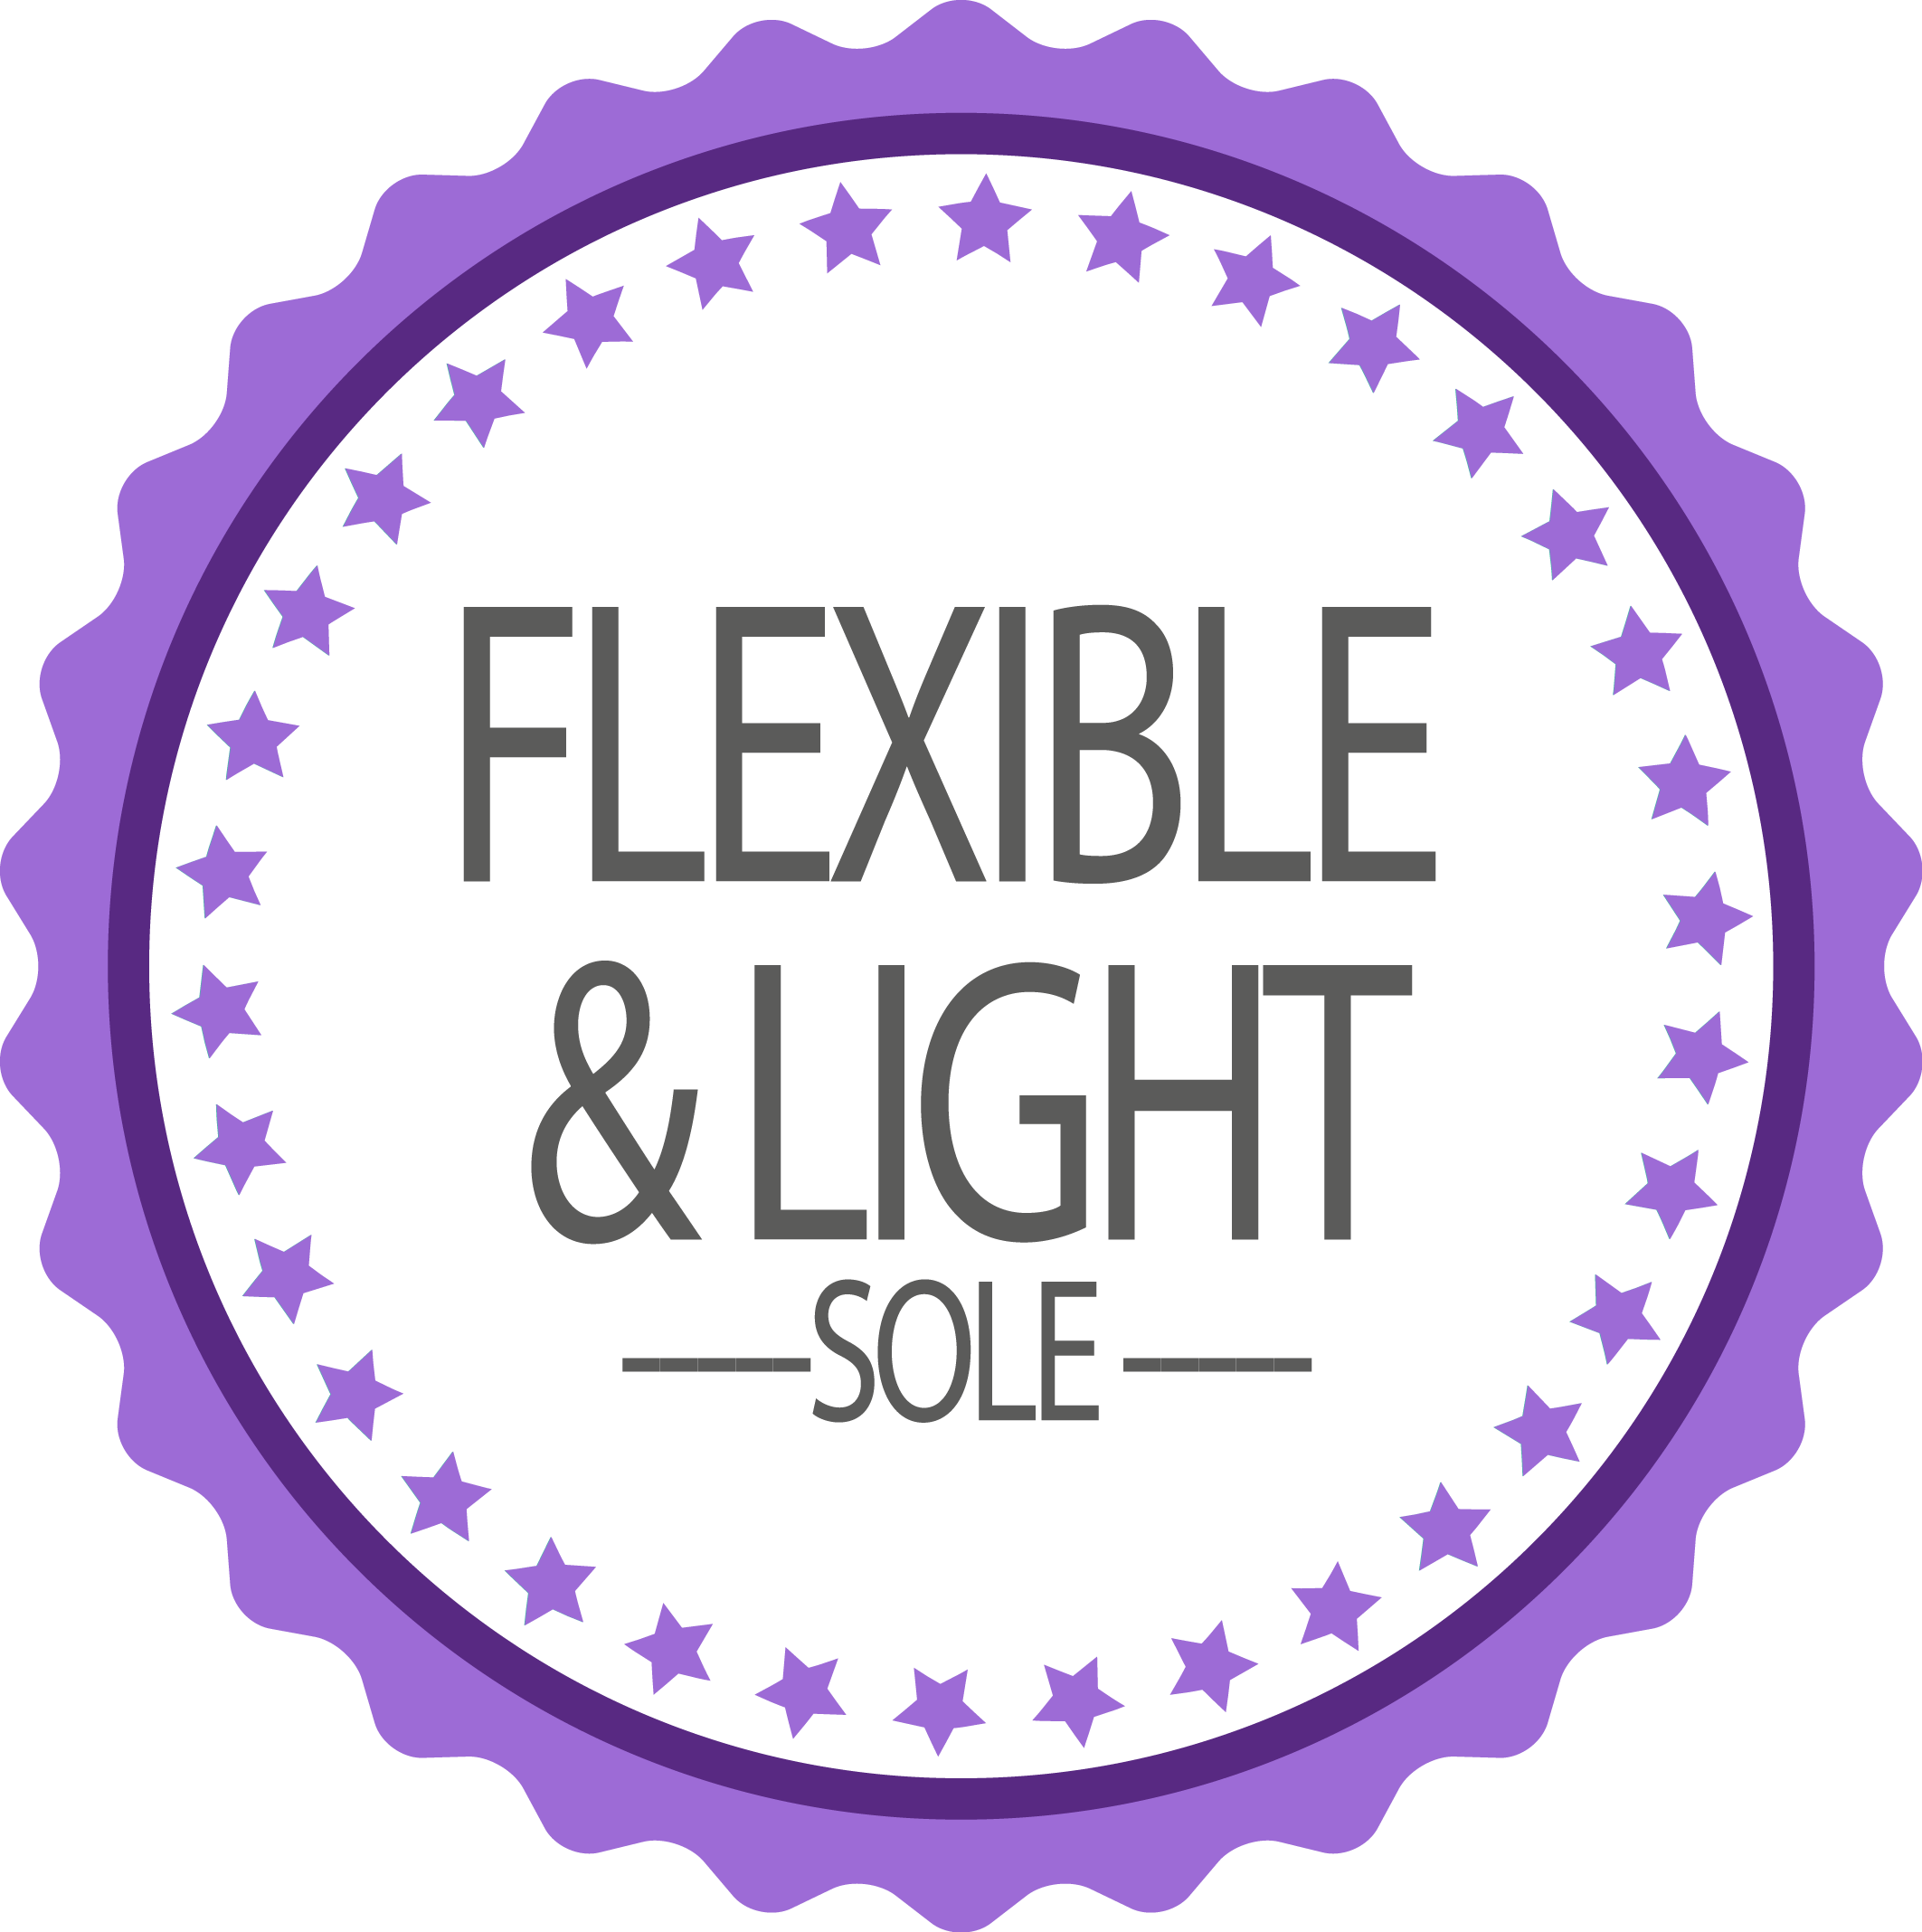 Flexible and light sole